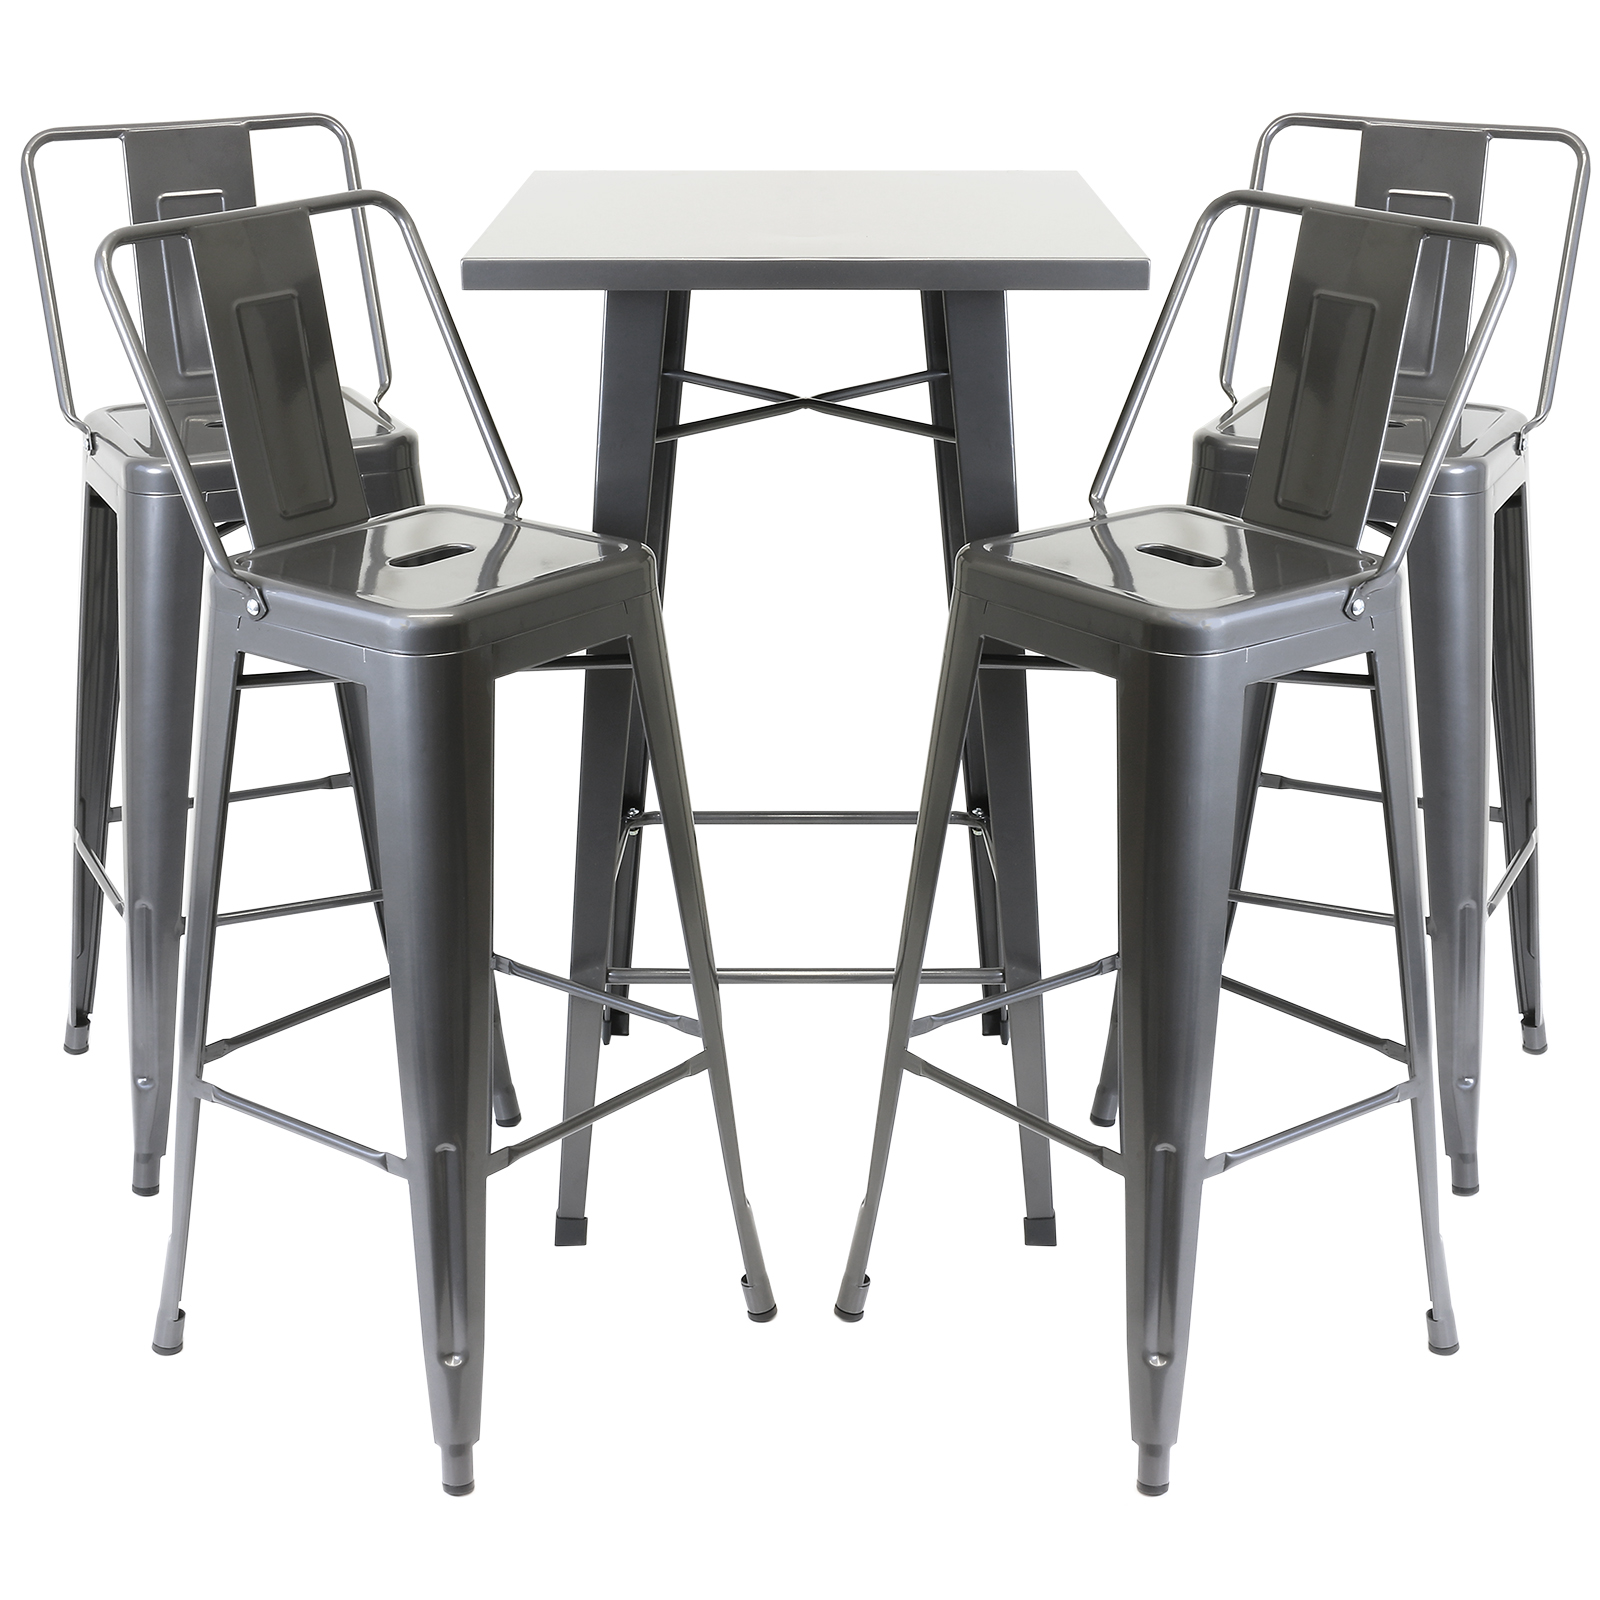 industrial bistro chairs breuer for sale hartleys gunmetal table and 4 bar stools